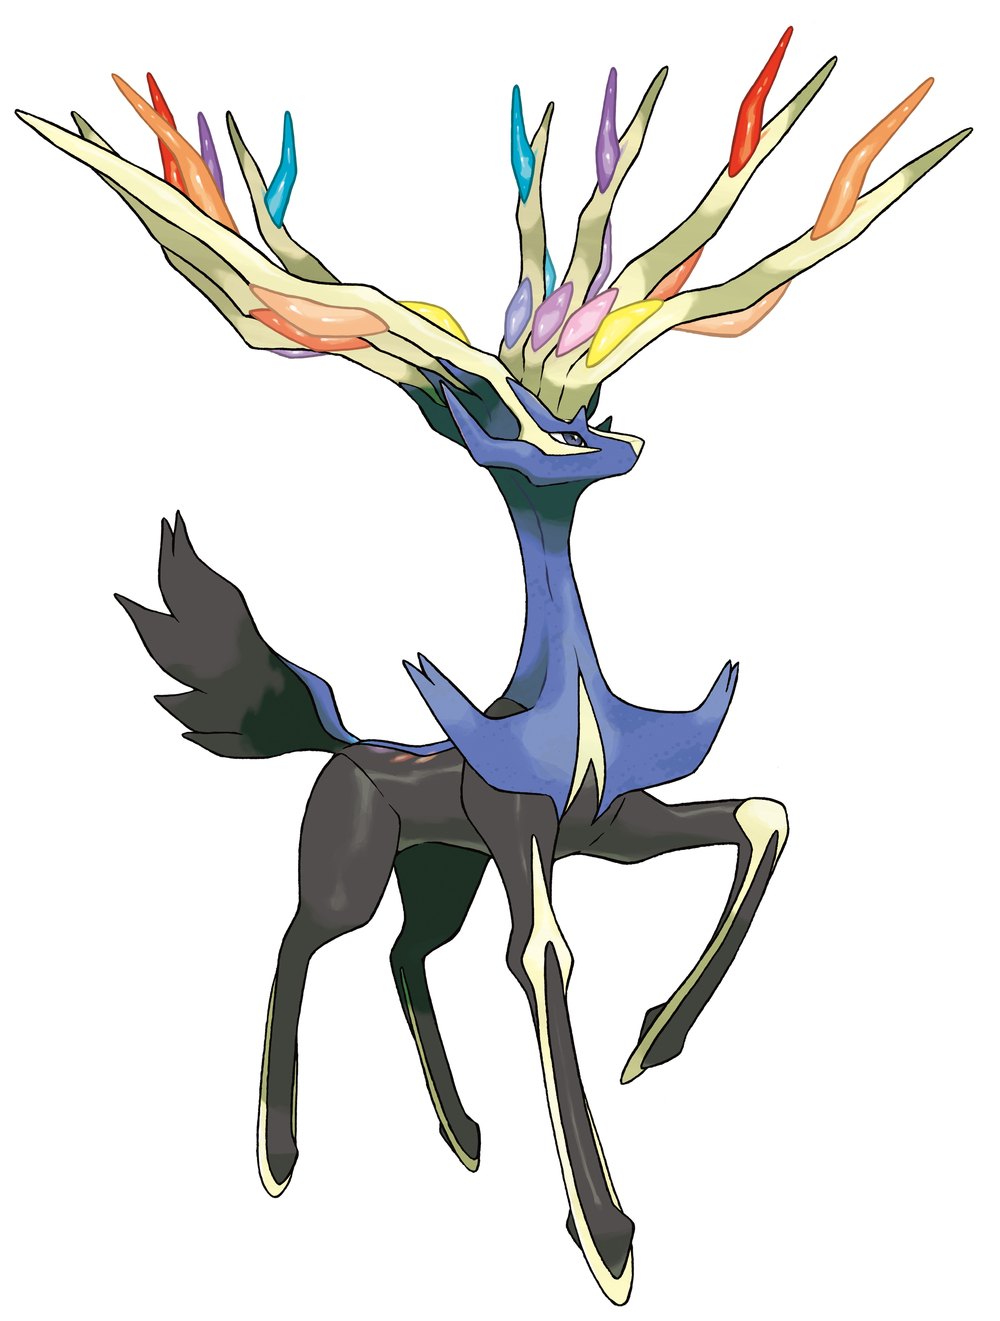 Xerneas_official art_300dpi.jpg